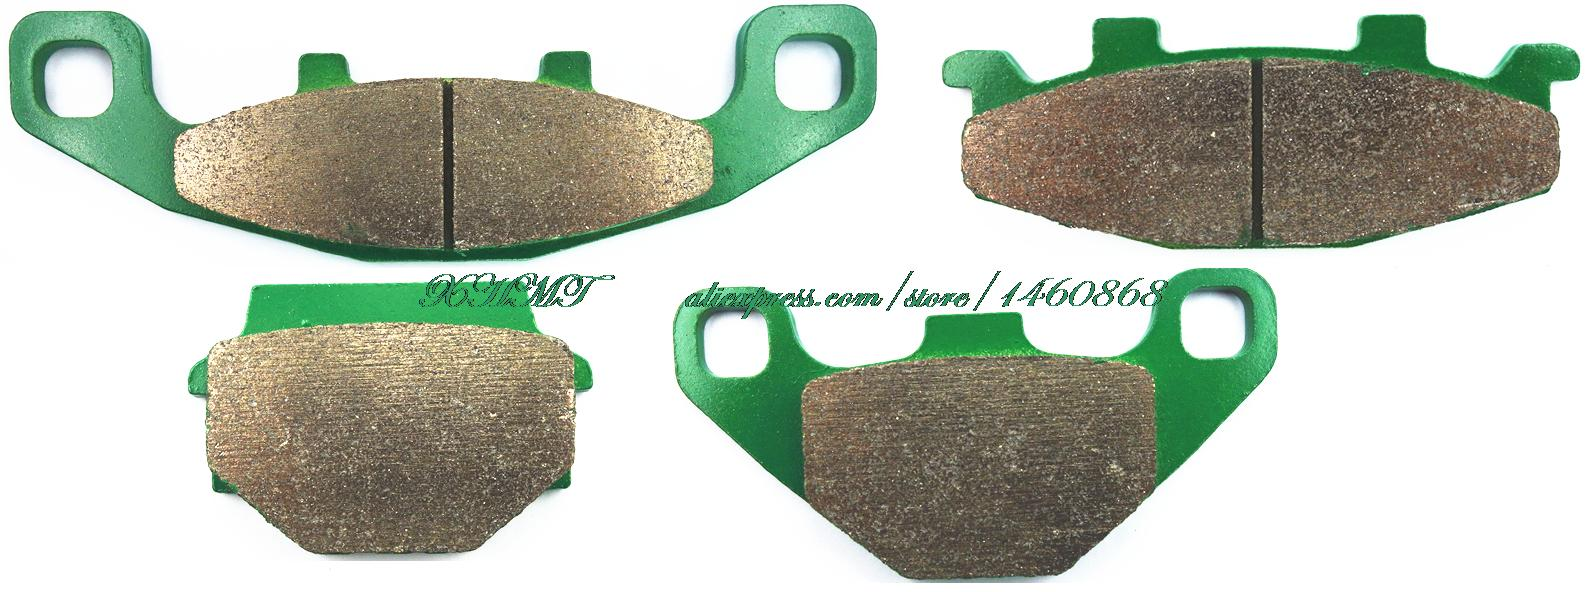 Brake Shoe Pads Set for KAWASAKI KLE400 KLE500 KLE 500 400 1991 & up/ KLE600 KLE 600 1992 & up/ EX250 EX 250 H1 - H2 1990 & up wagner thermoquiet pab246r riveted brake shoe set front